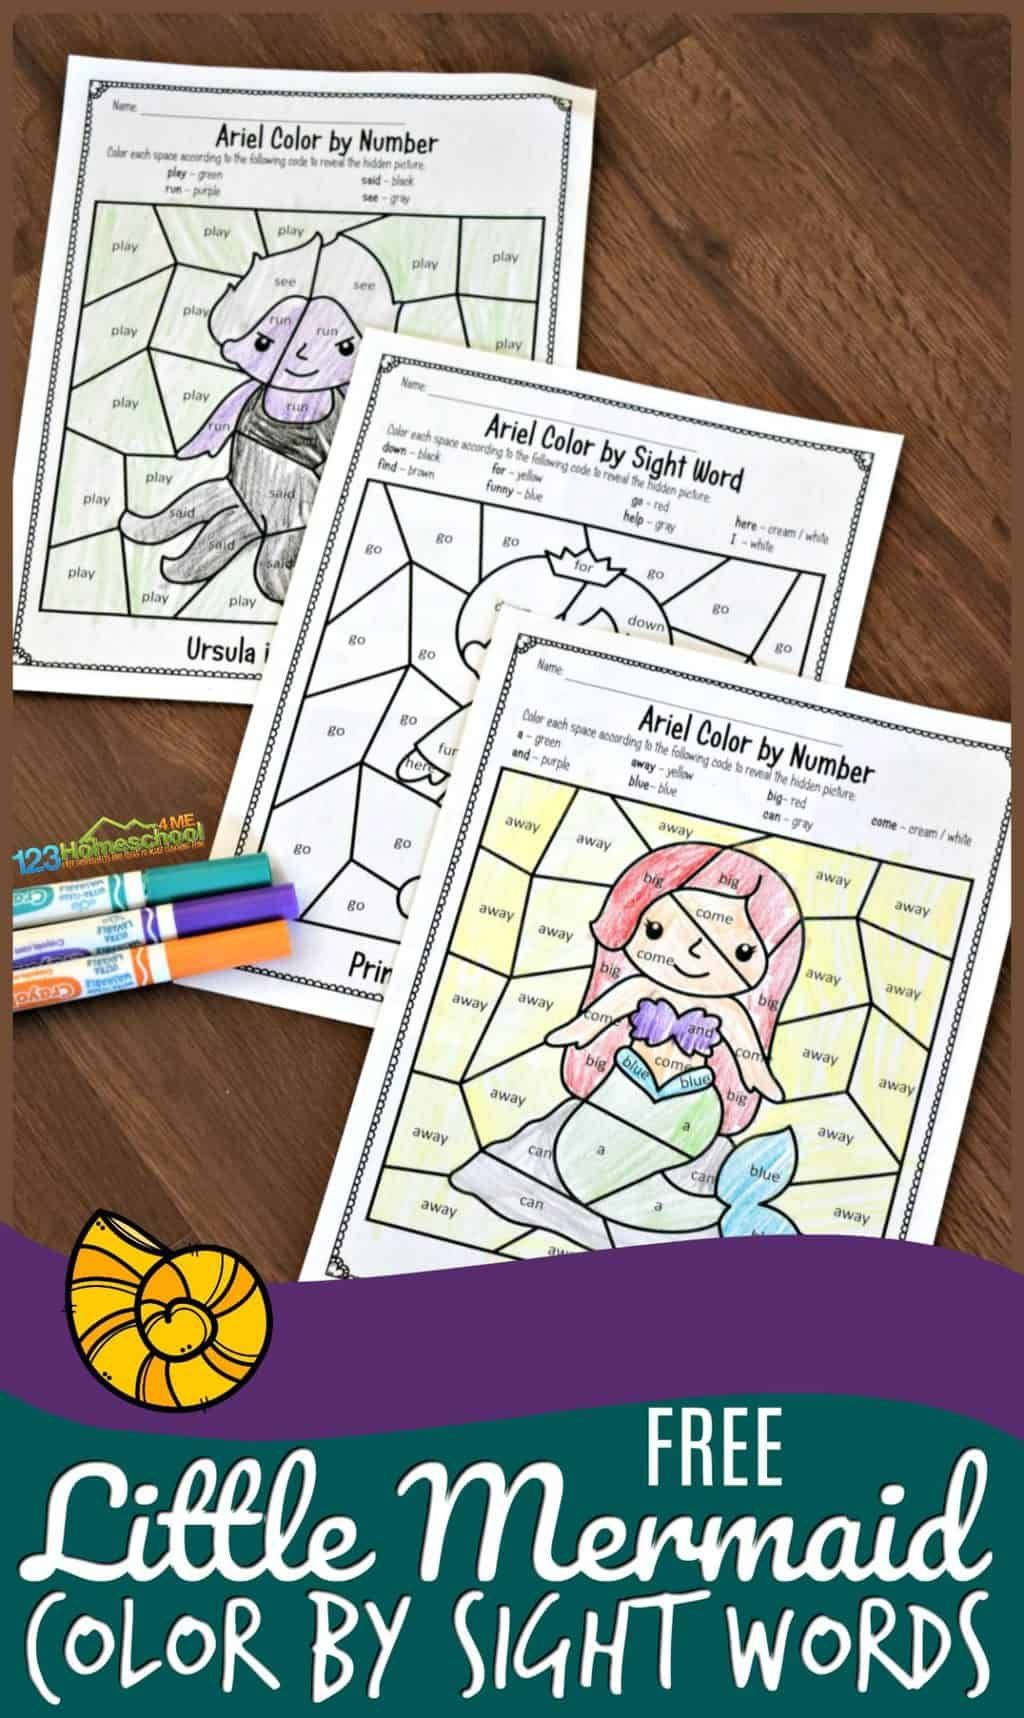 Free Little Mermaid Color By Sight Words